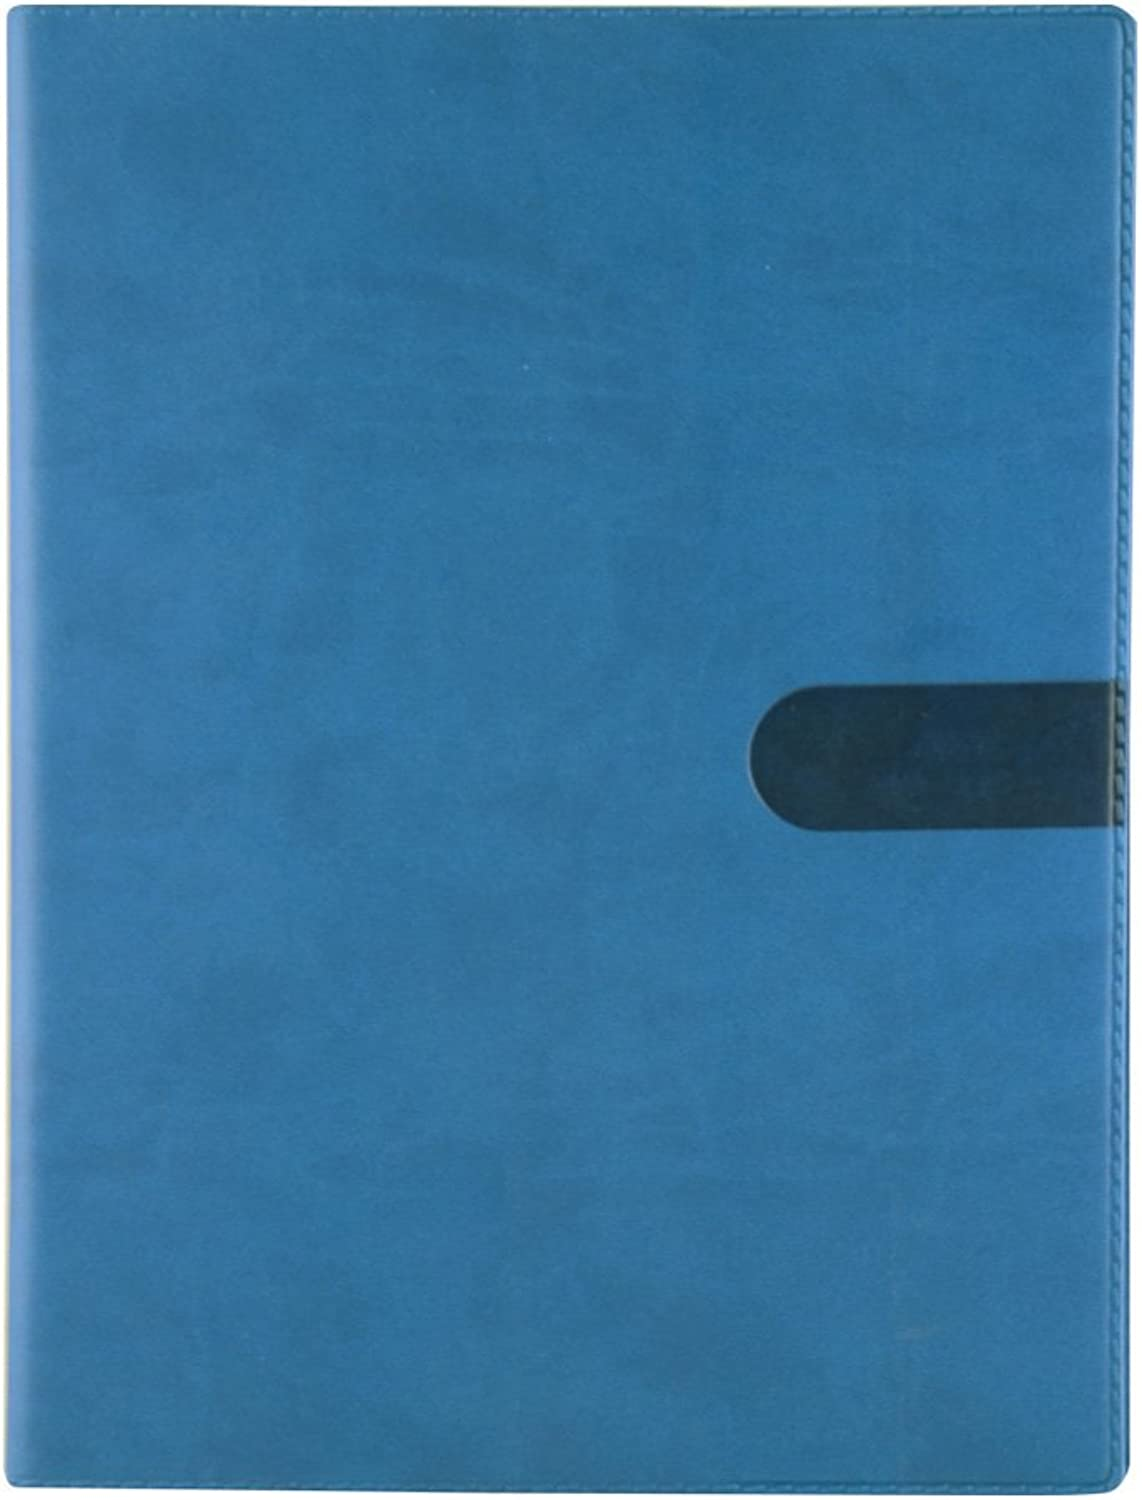 Quo Vadis Principal  29 Academic Planner, Texas Cover, Blau Faux-Suede, 12 Months, August 2018 to July 2019, Weekly, 7 by 9.38 inches B07CRK632J  | Vollständige Spezifikation